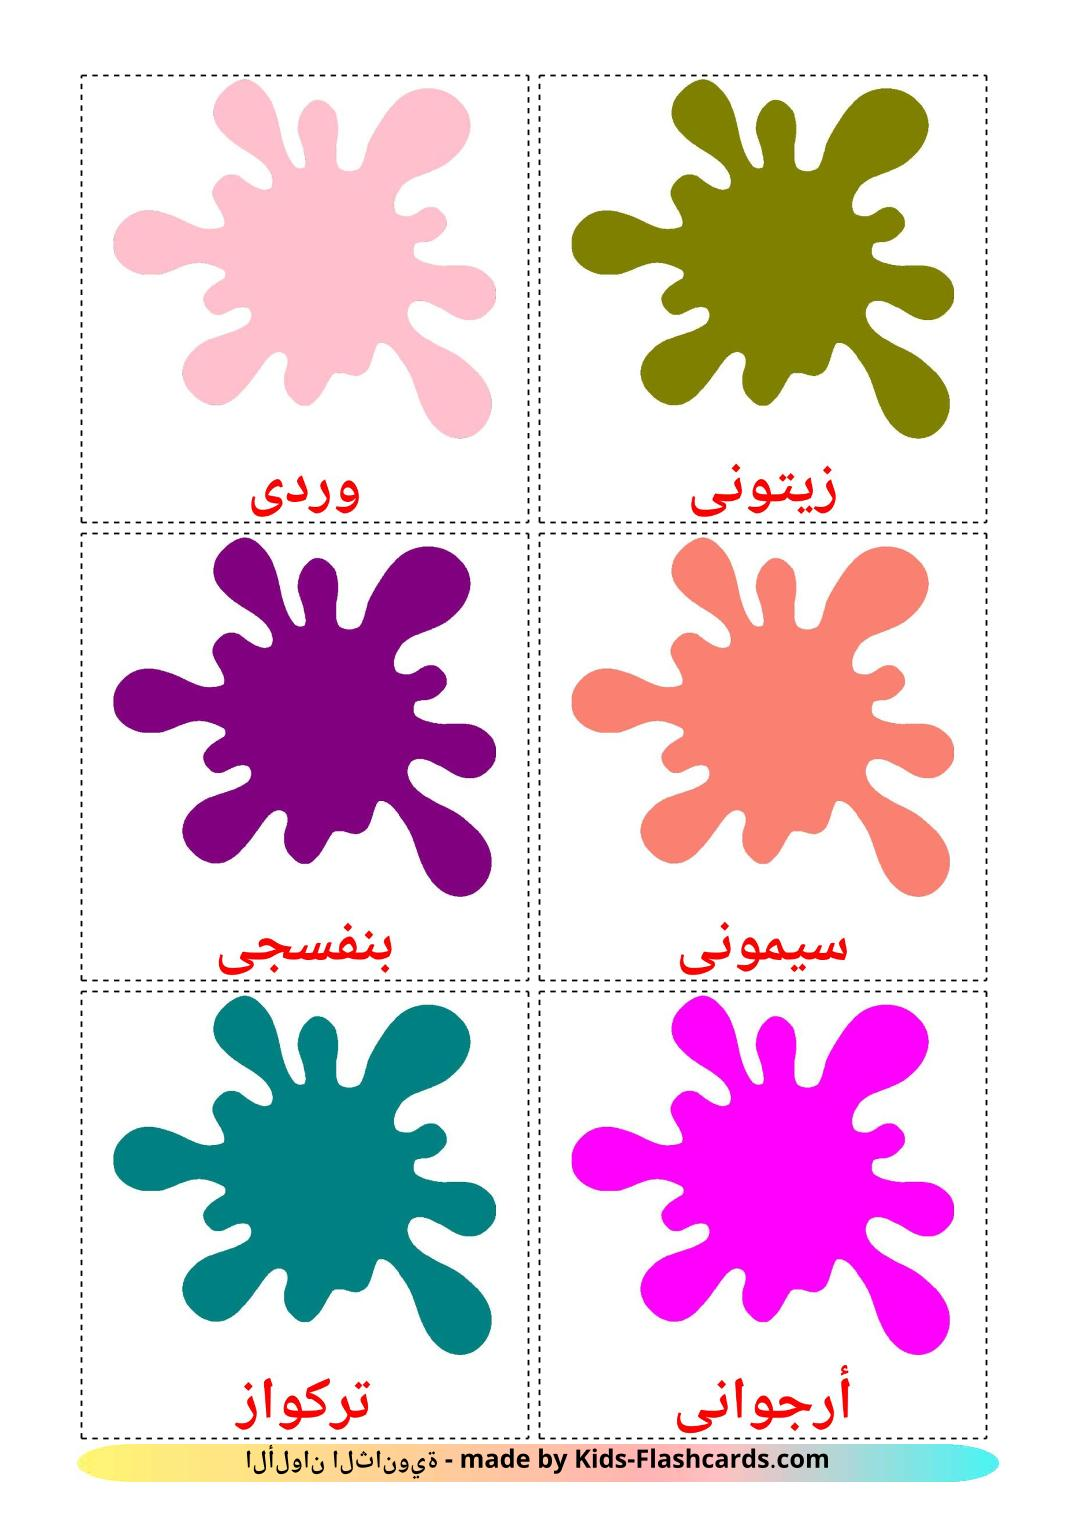 Secondary colors - 20 Free Printable arabic Flashcards